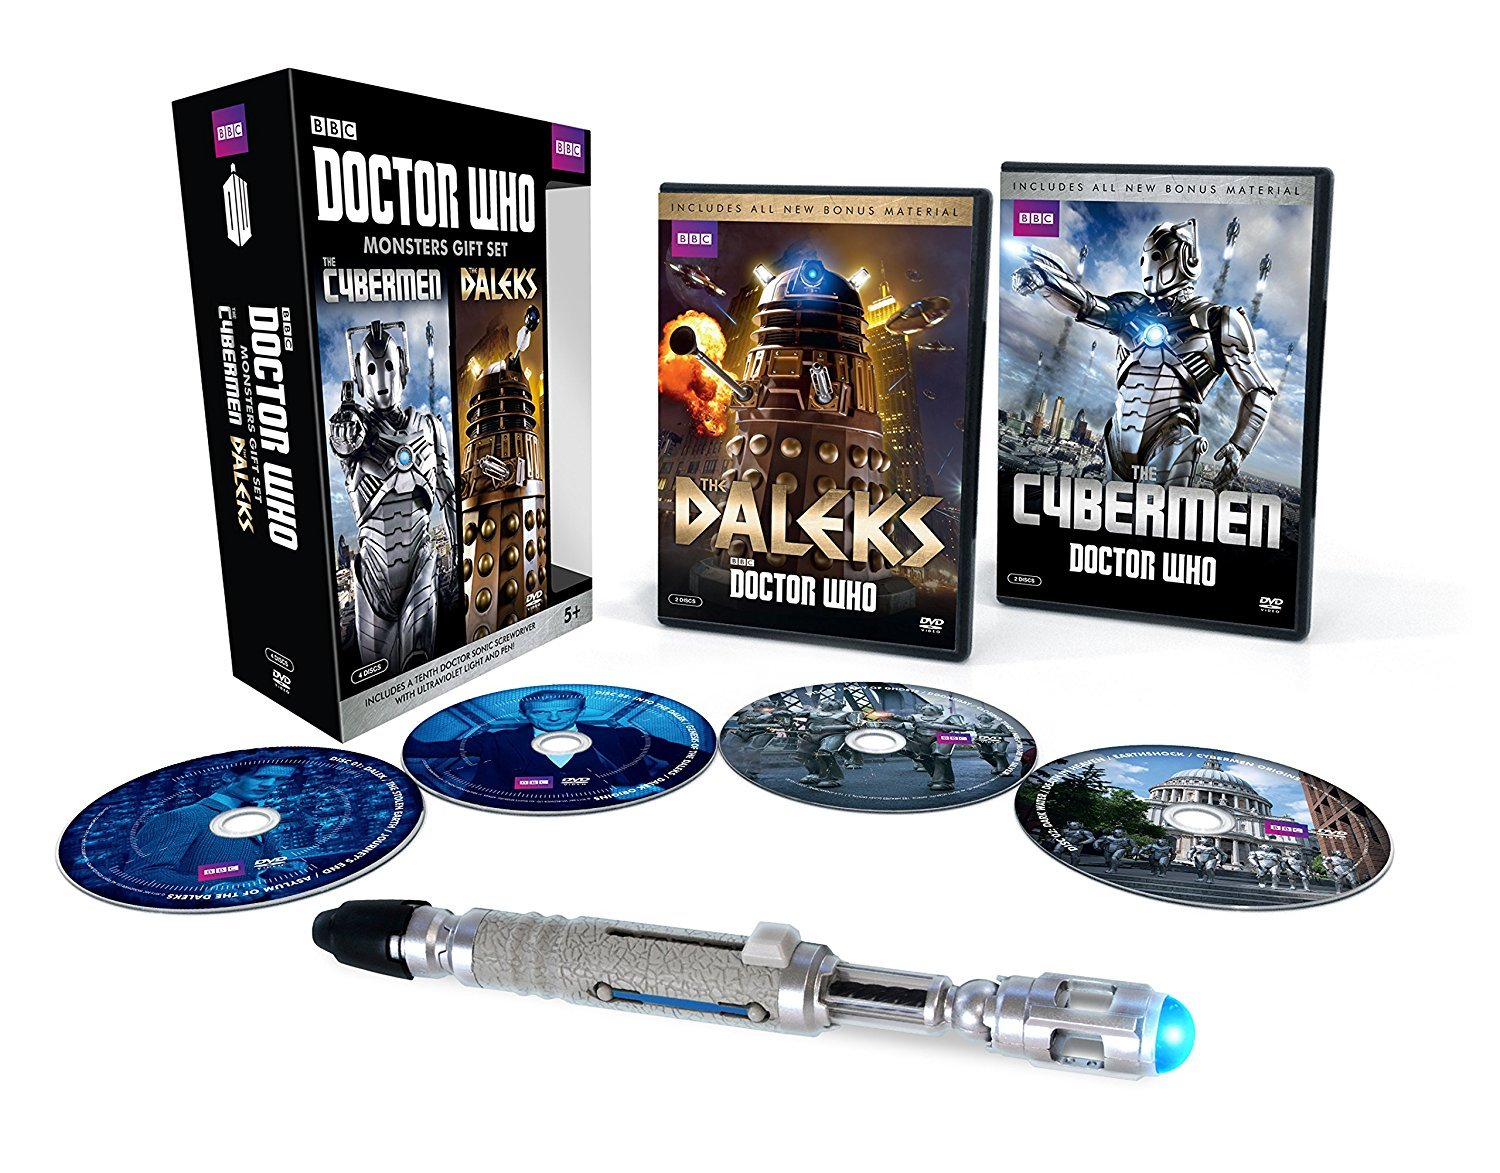 Doctor Who Monsters Gift Set